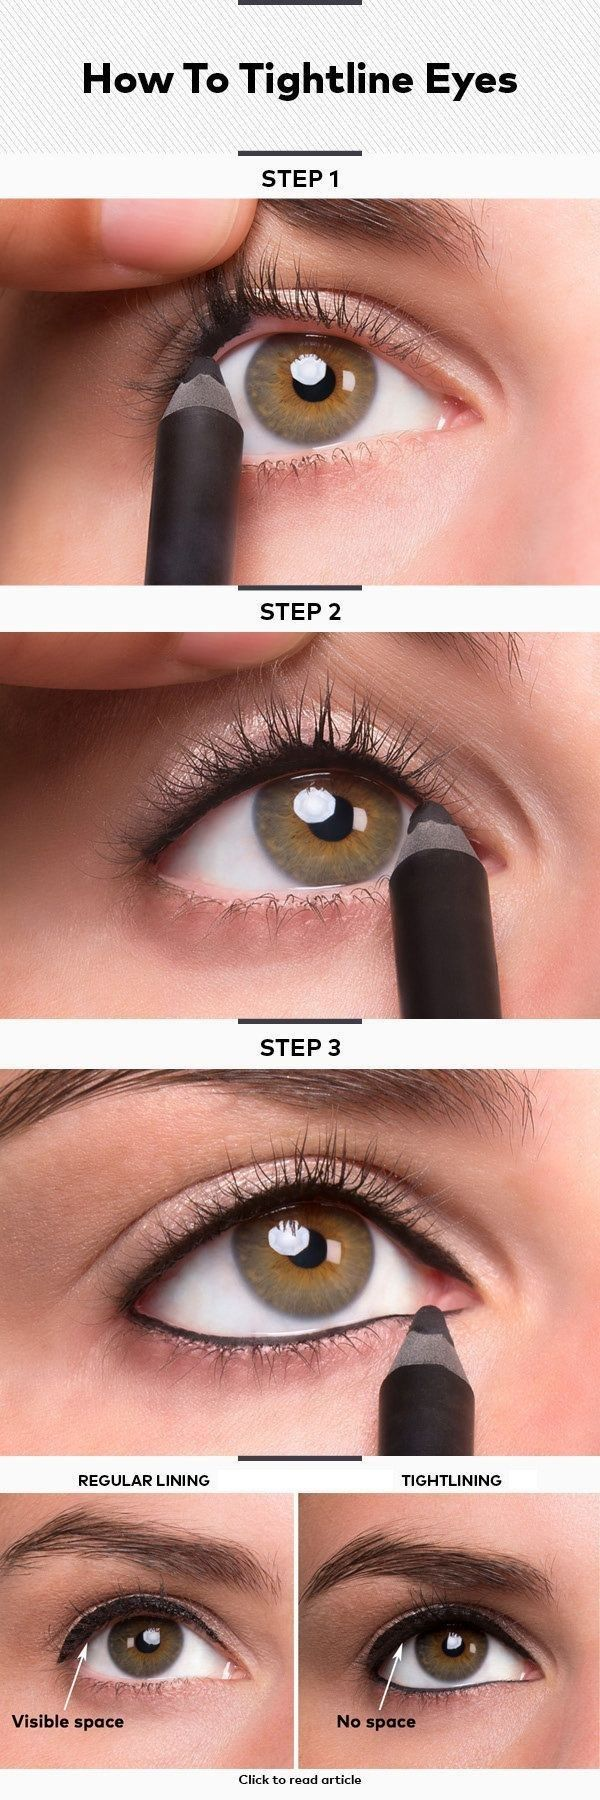 10 Stunningly Simple Tutorials For The Best Eye Makeup: 10 Stunningly Simple Tutorials For The Best Eye Makeup